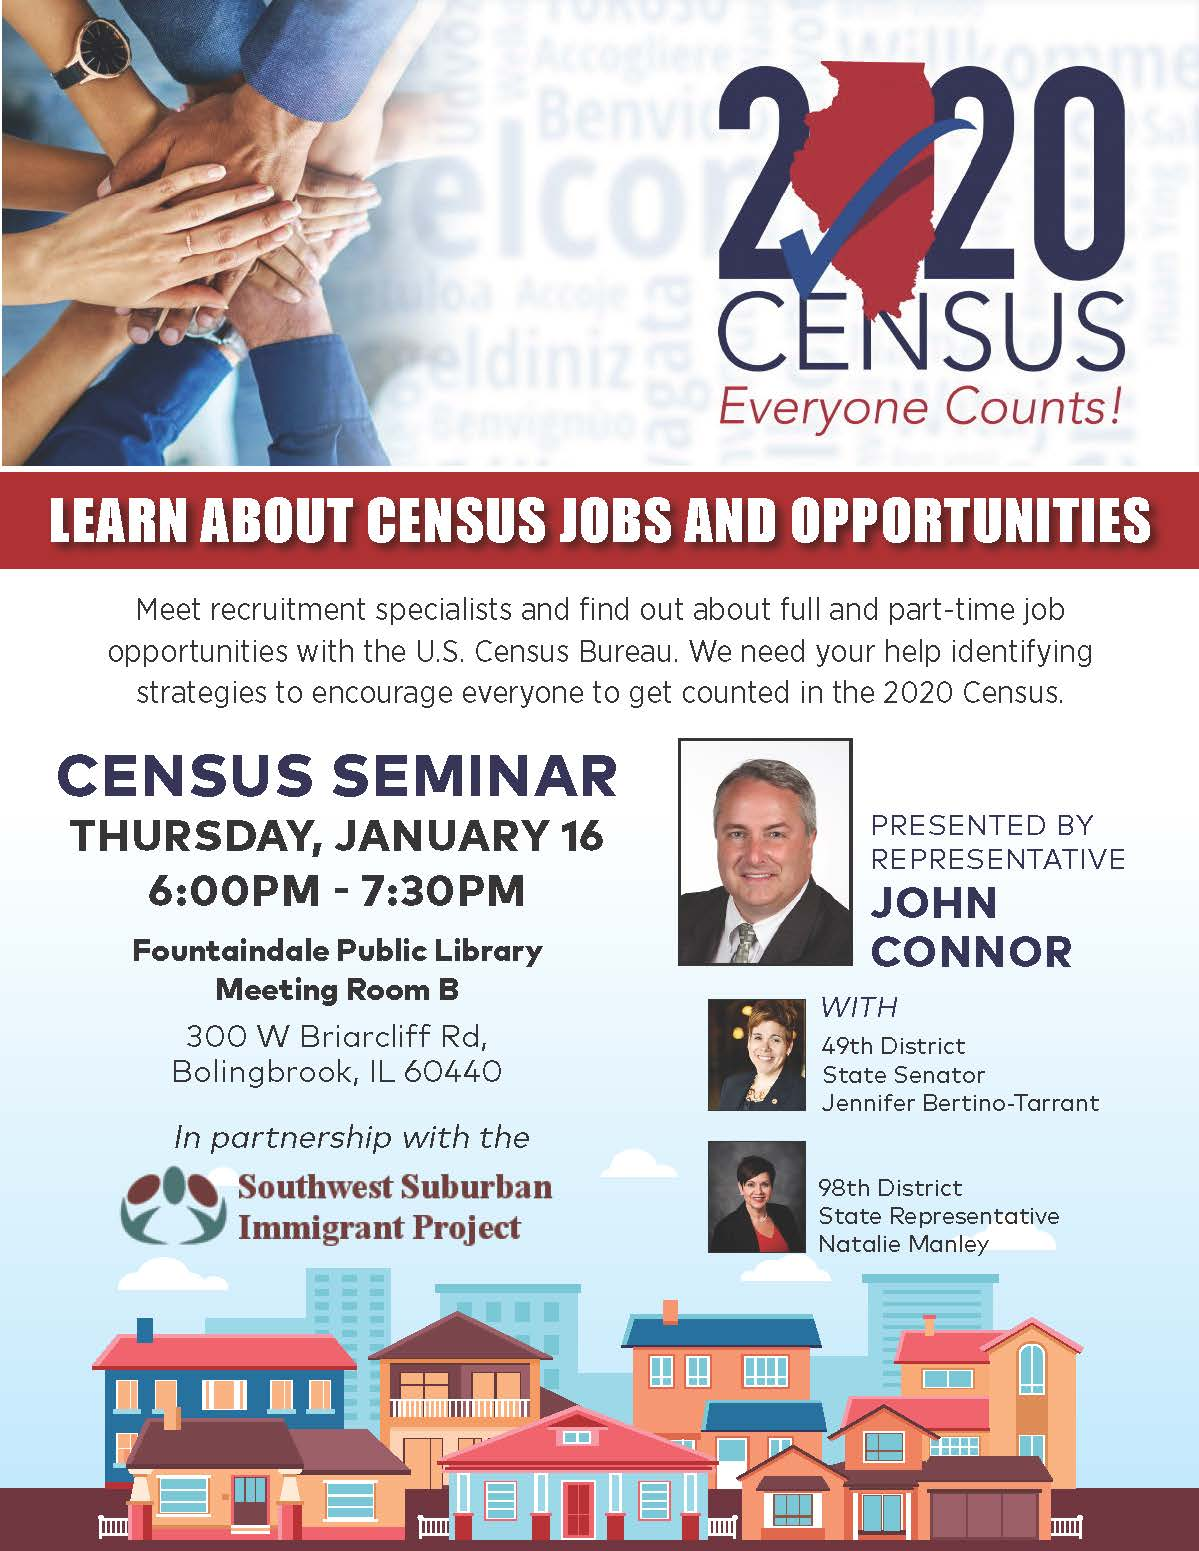 Census Seminar Flyer - Fountaindale Public Library Bolingbrook